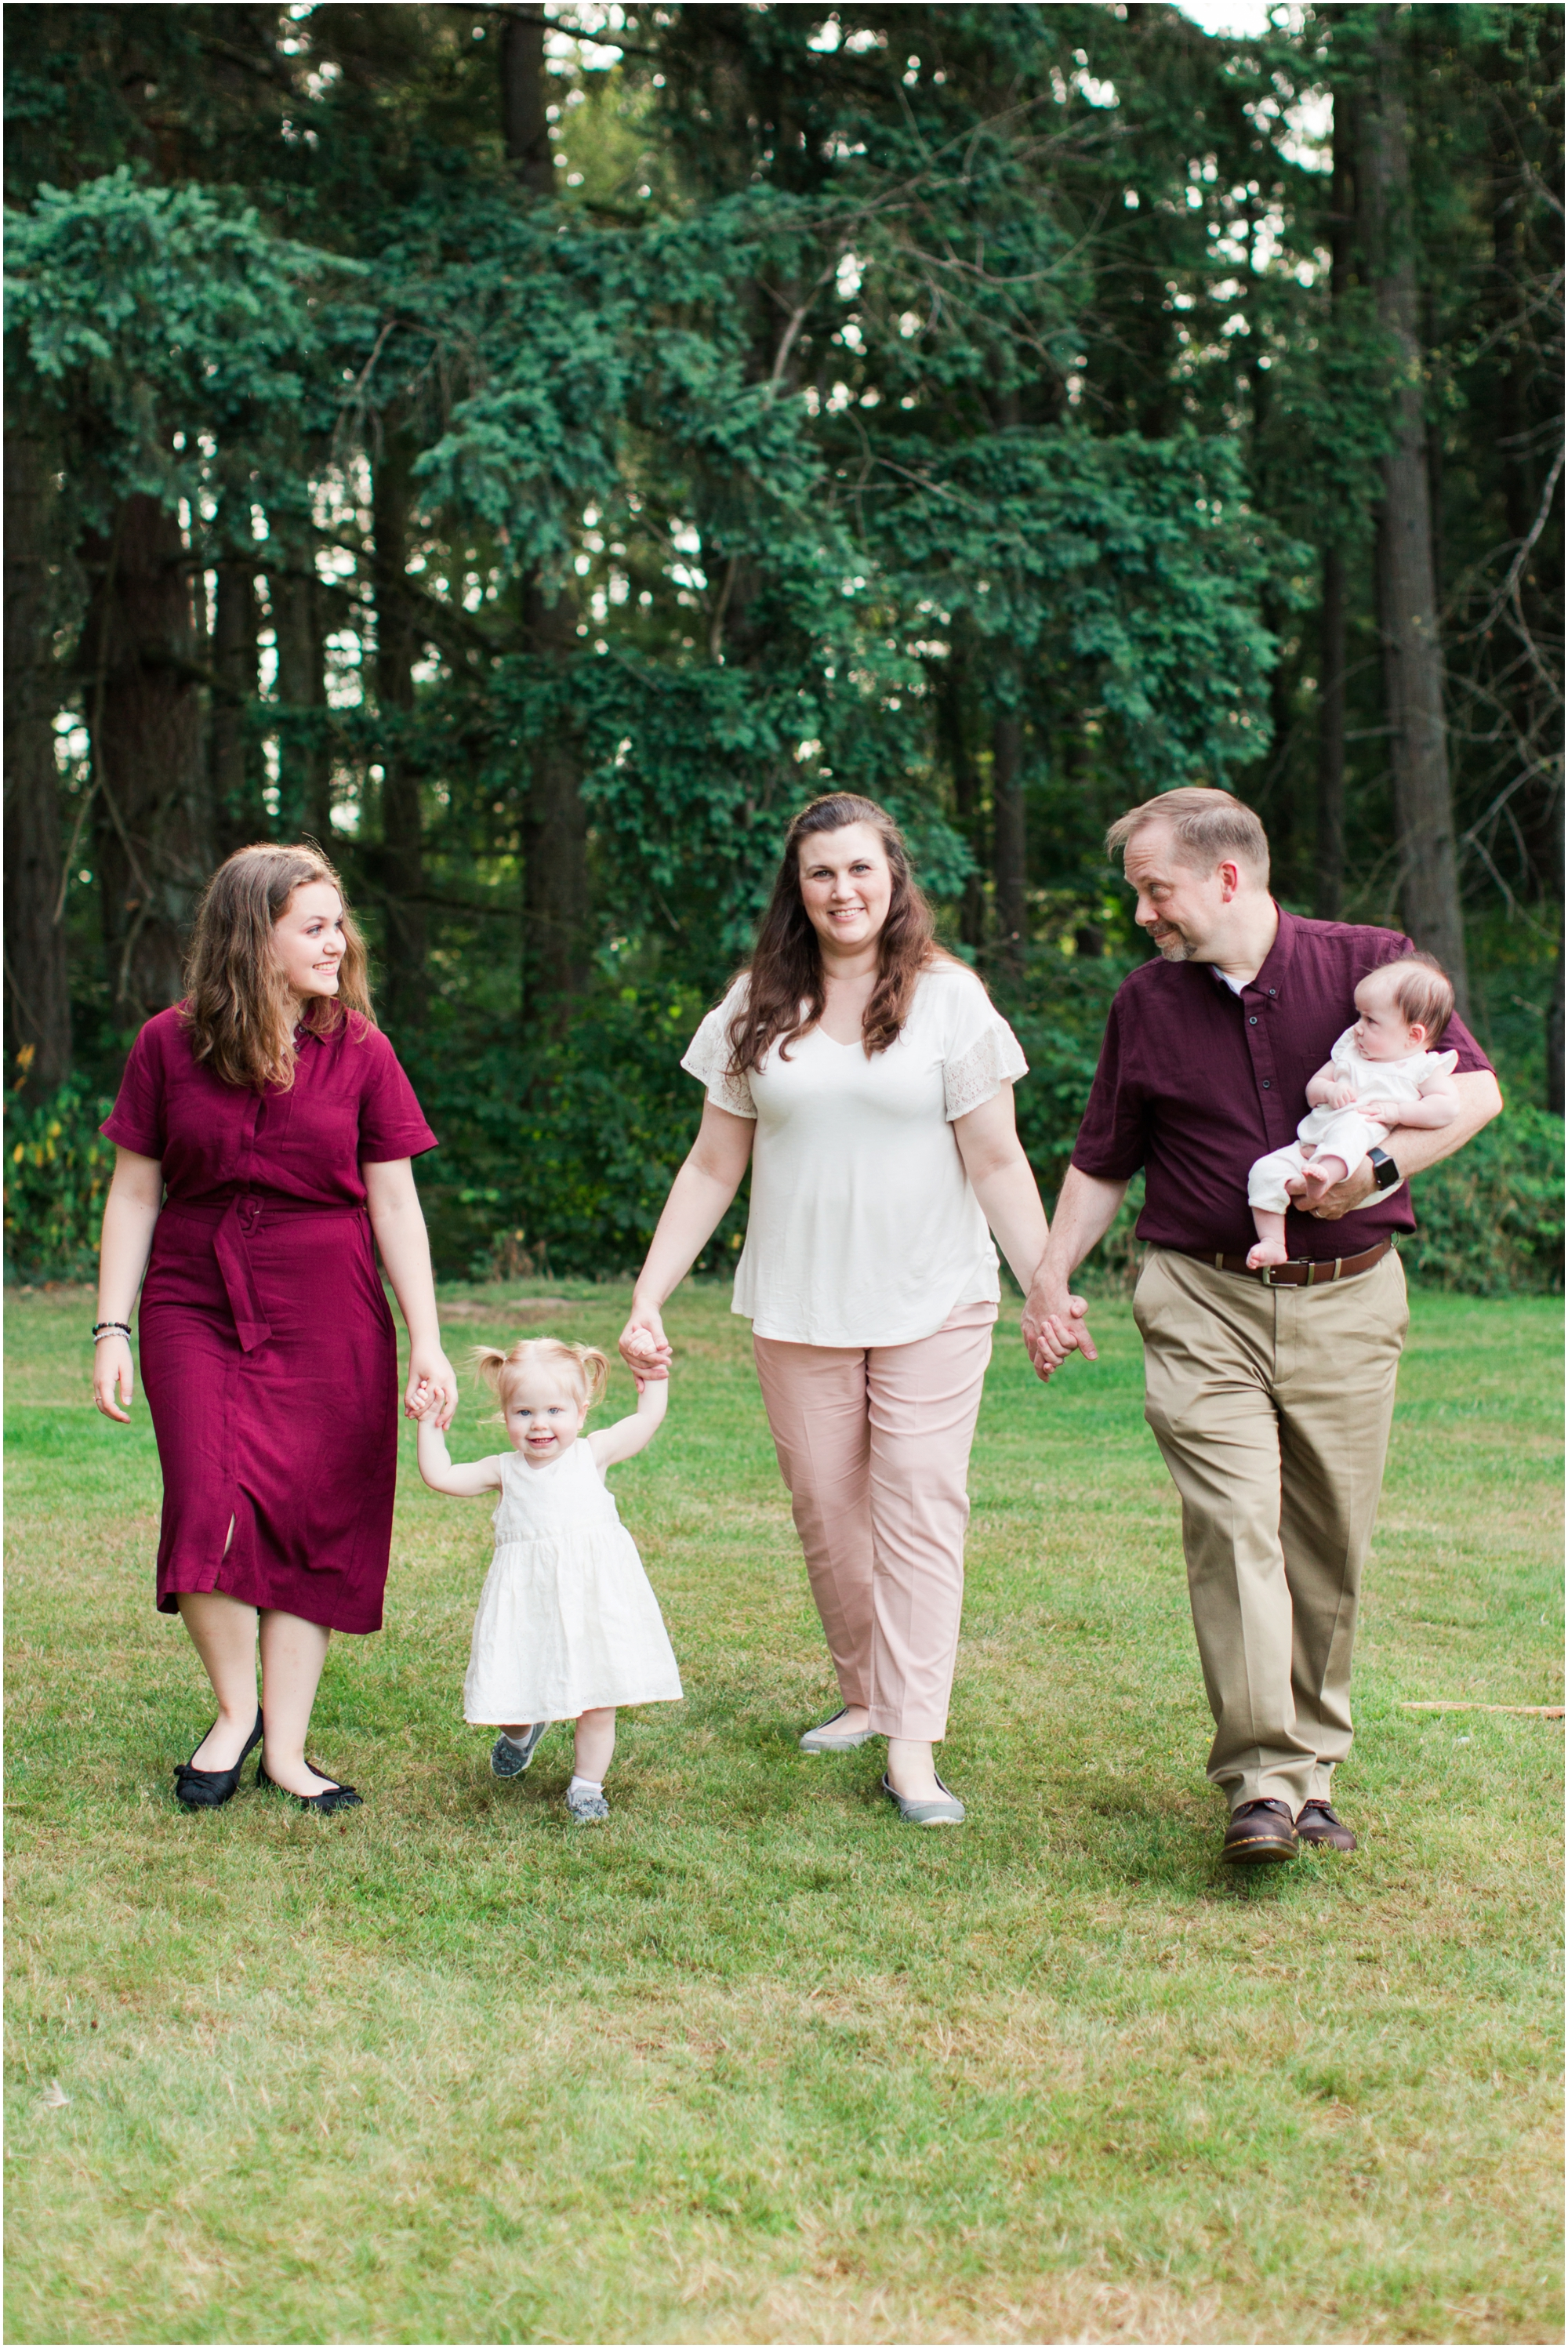 Family portraits at Bradley Lake Park in Puyallup, WA. Photos by Briana Calderon Photography based in the greater Seattle-Tacoma Area._1376.jpg